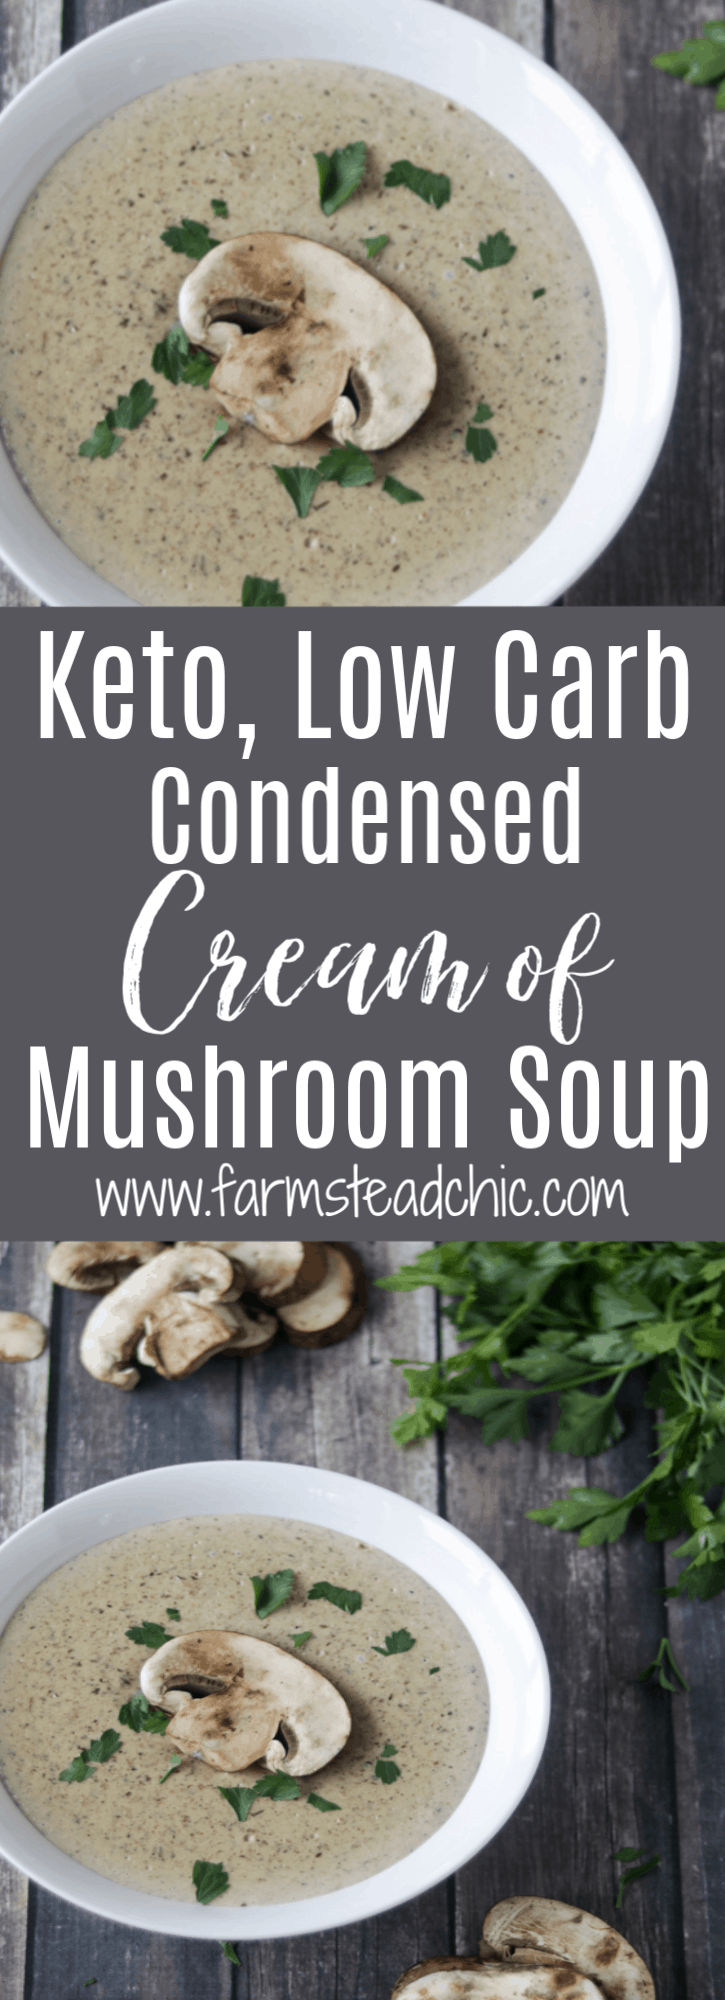 Pinterest Graphic - Keto Cream of Mushroom Soup in a white bowl on a dark barn wood background with fresh mushrooms and parsley.